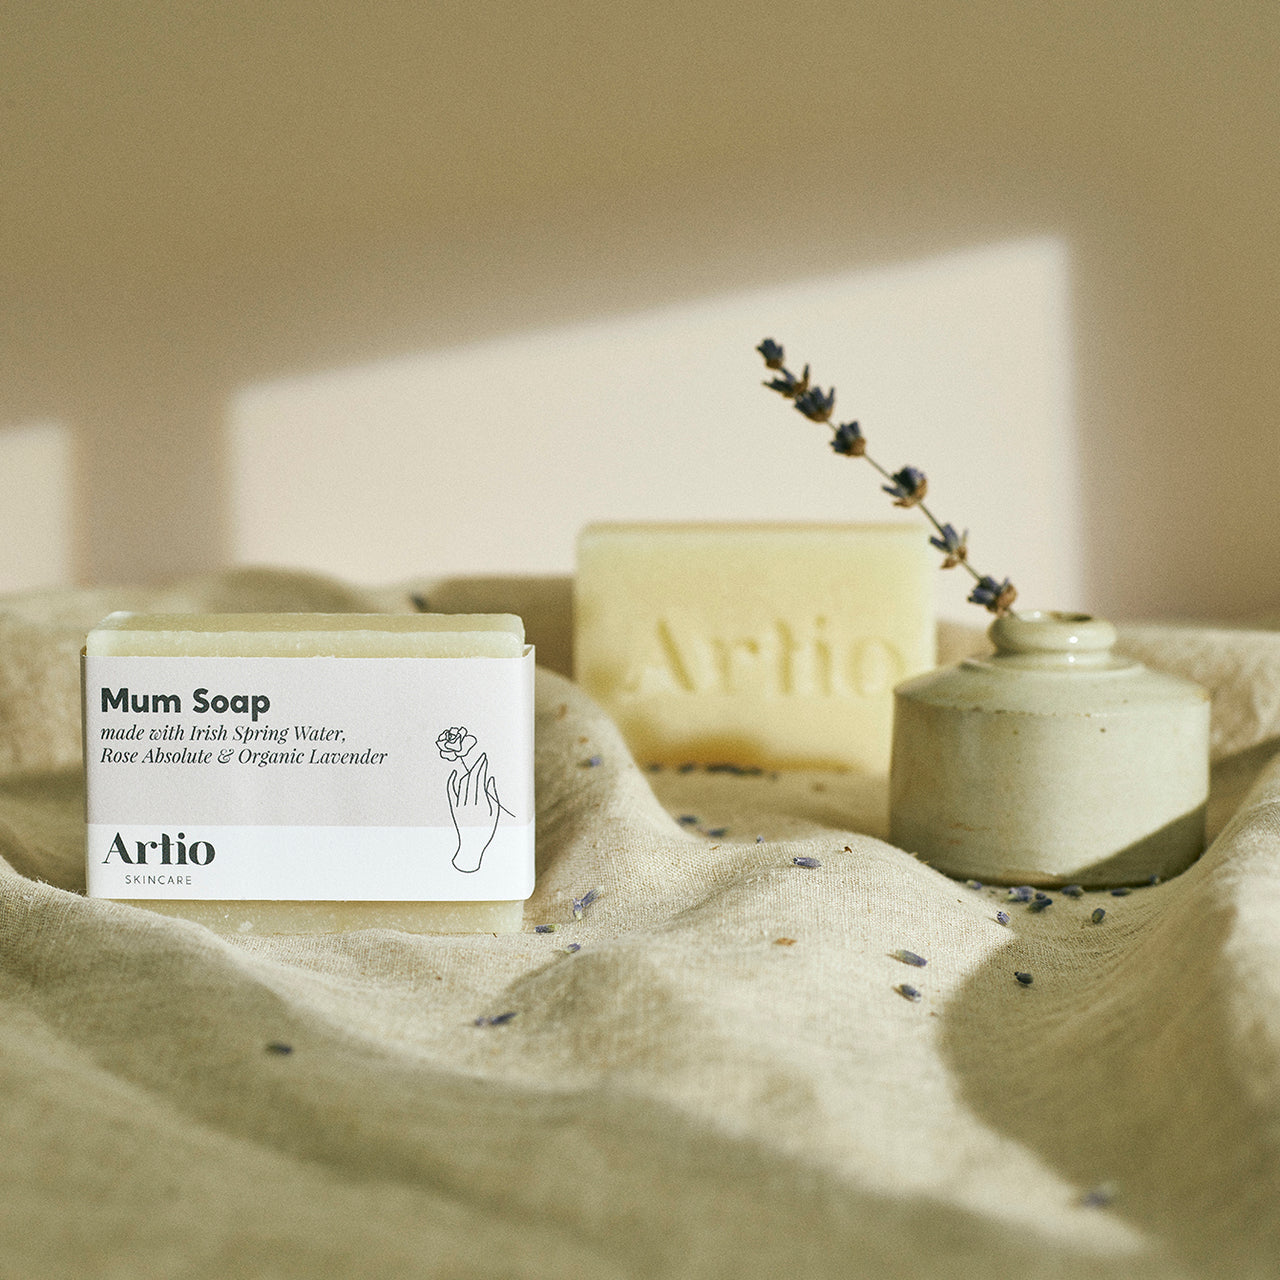 Artio Skincare Mum Soap